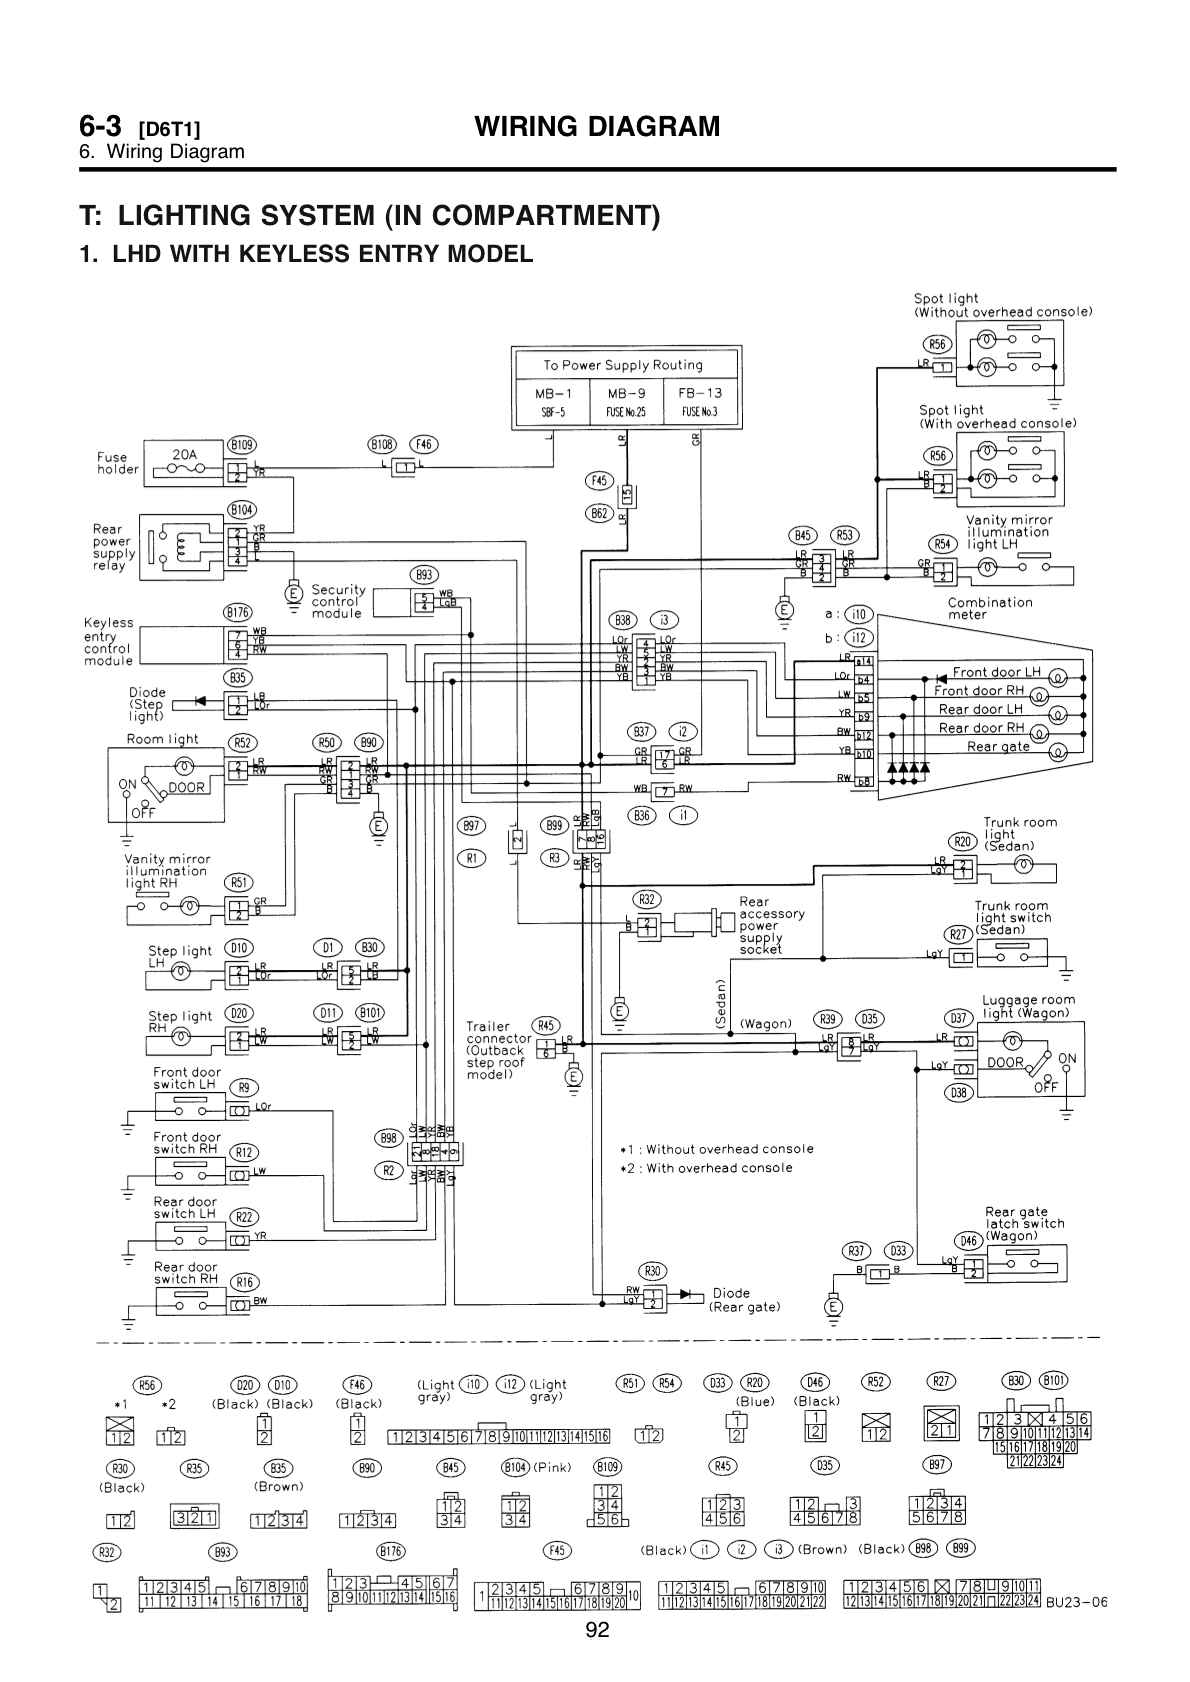 wiring_diagram1 wiring diagram subaru impreza 2015 ireleast readingrat net 2000 subaru outback wiring diagram at alyssarenee.co